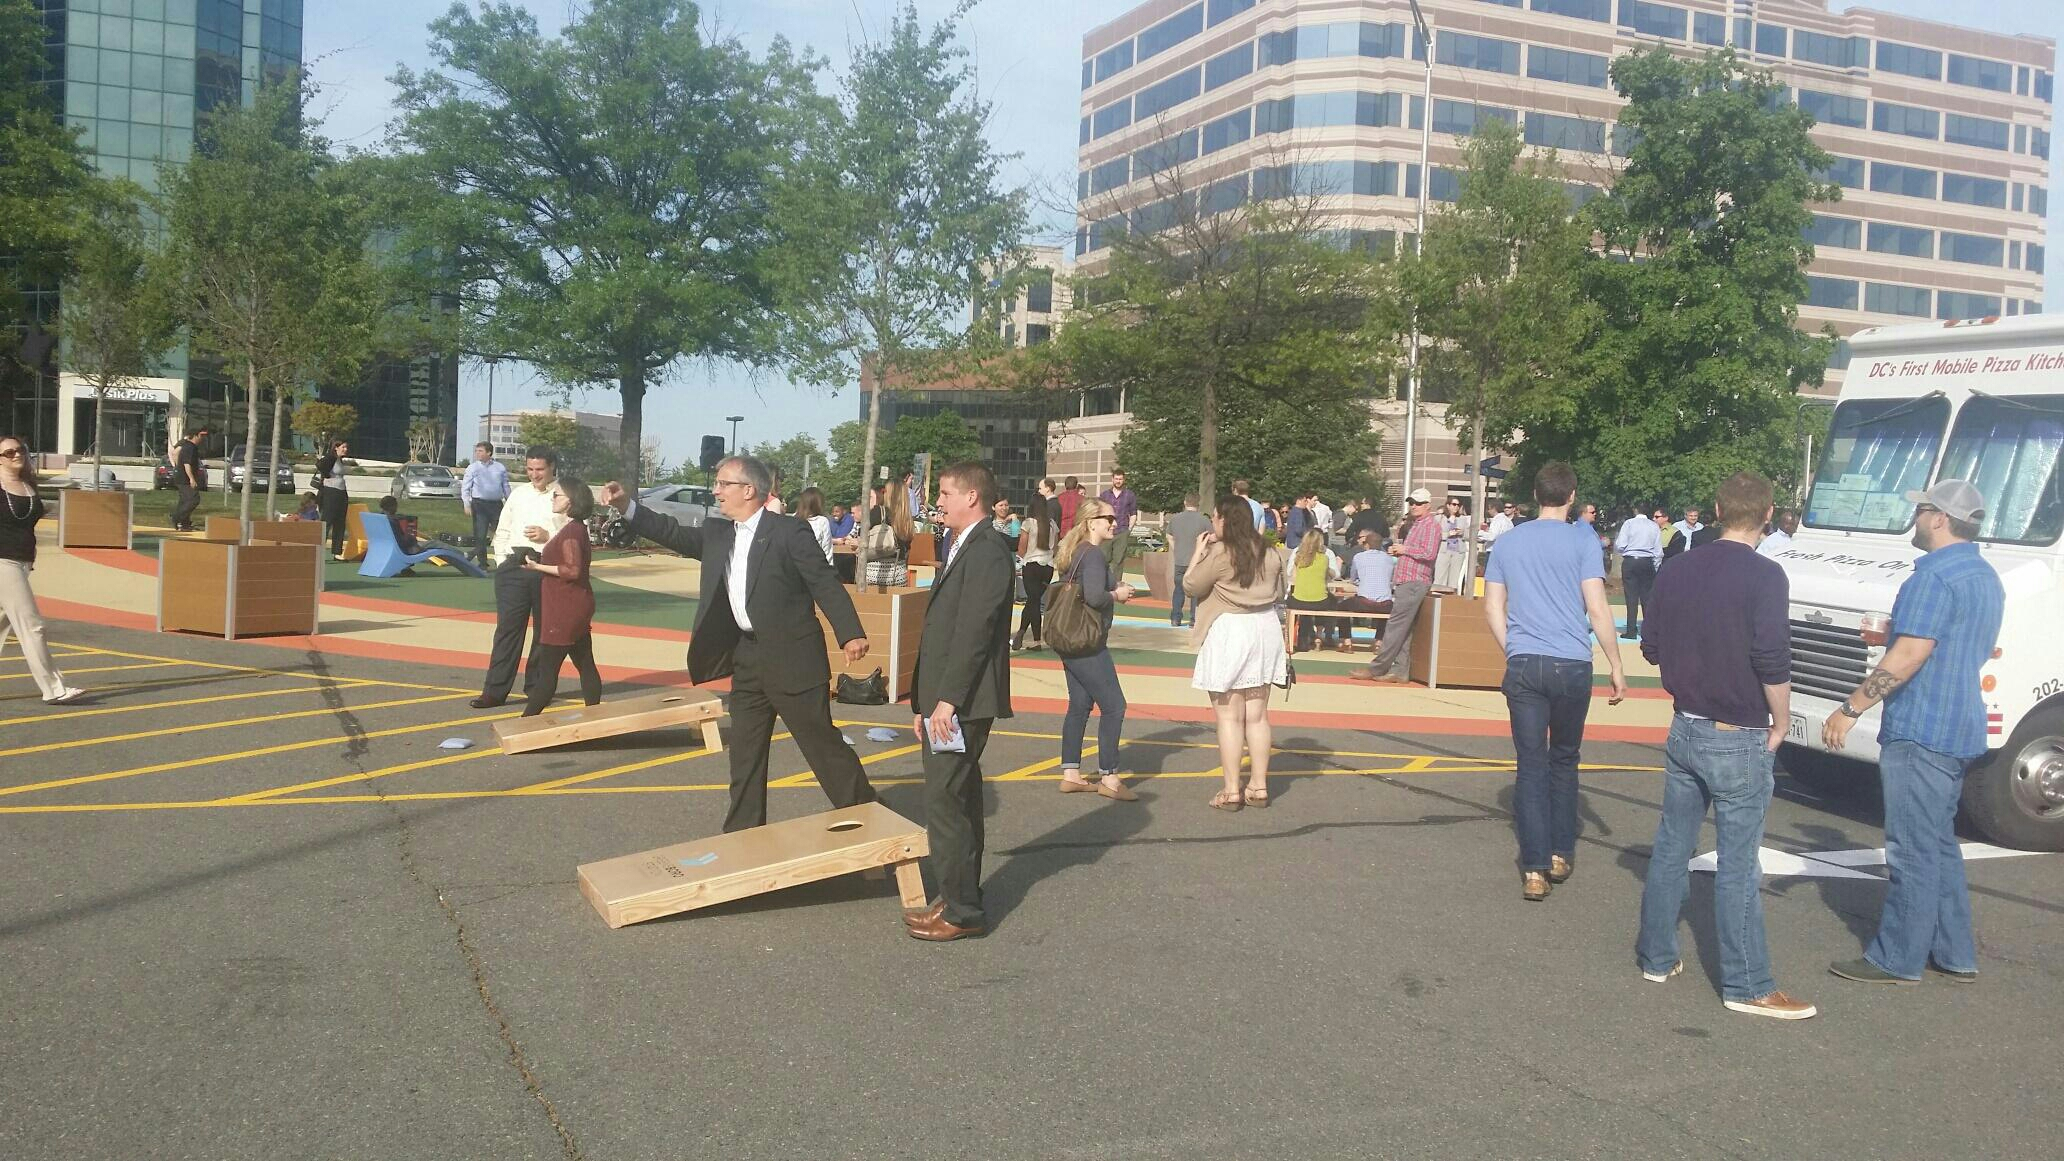 McLean, VA - Music in the park at our Greensboro Station office! Music, corn hole and kegs.. what more do you need after a day of work. #loveyourworkspace